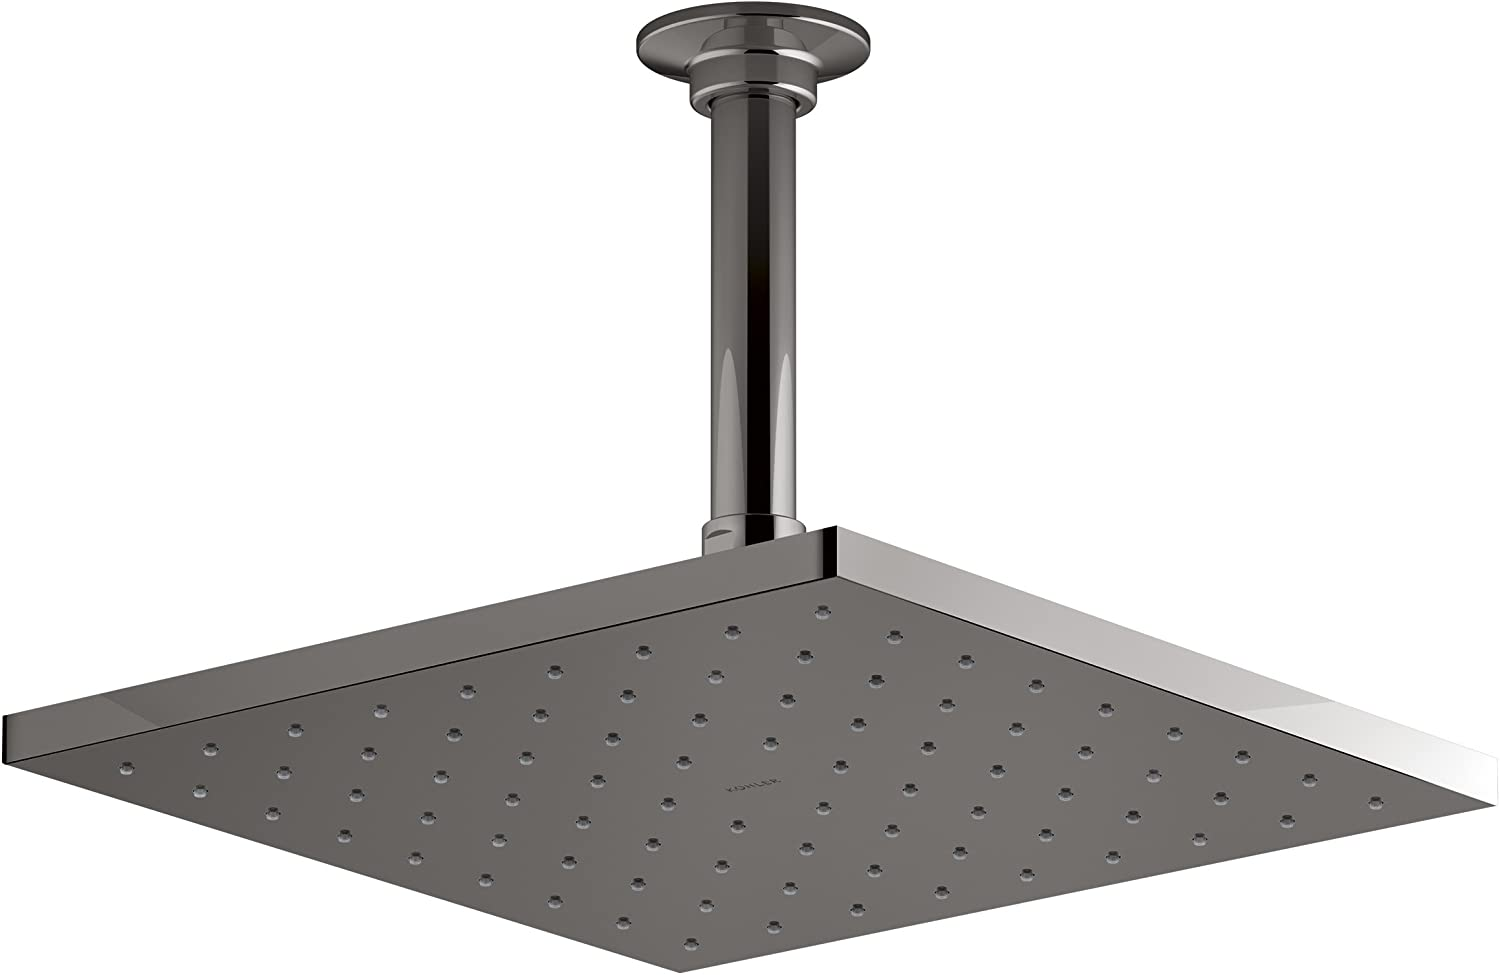 KOHLER 13696-TT Contemporary Square 10 rainhead with Katalyst R air-induction spray, 2.5 gpm, Titanium